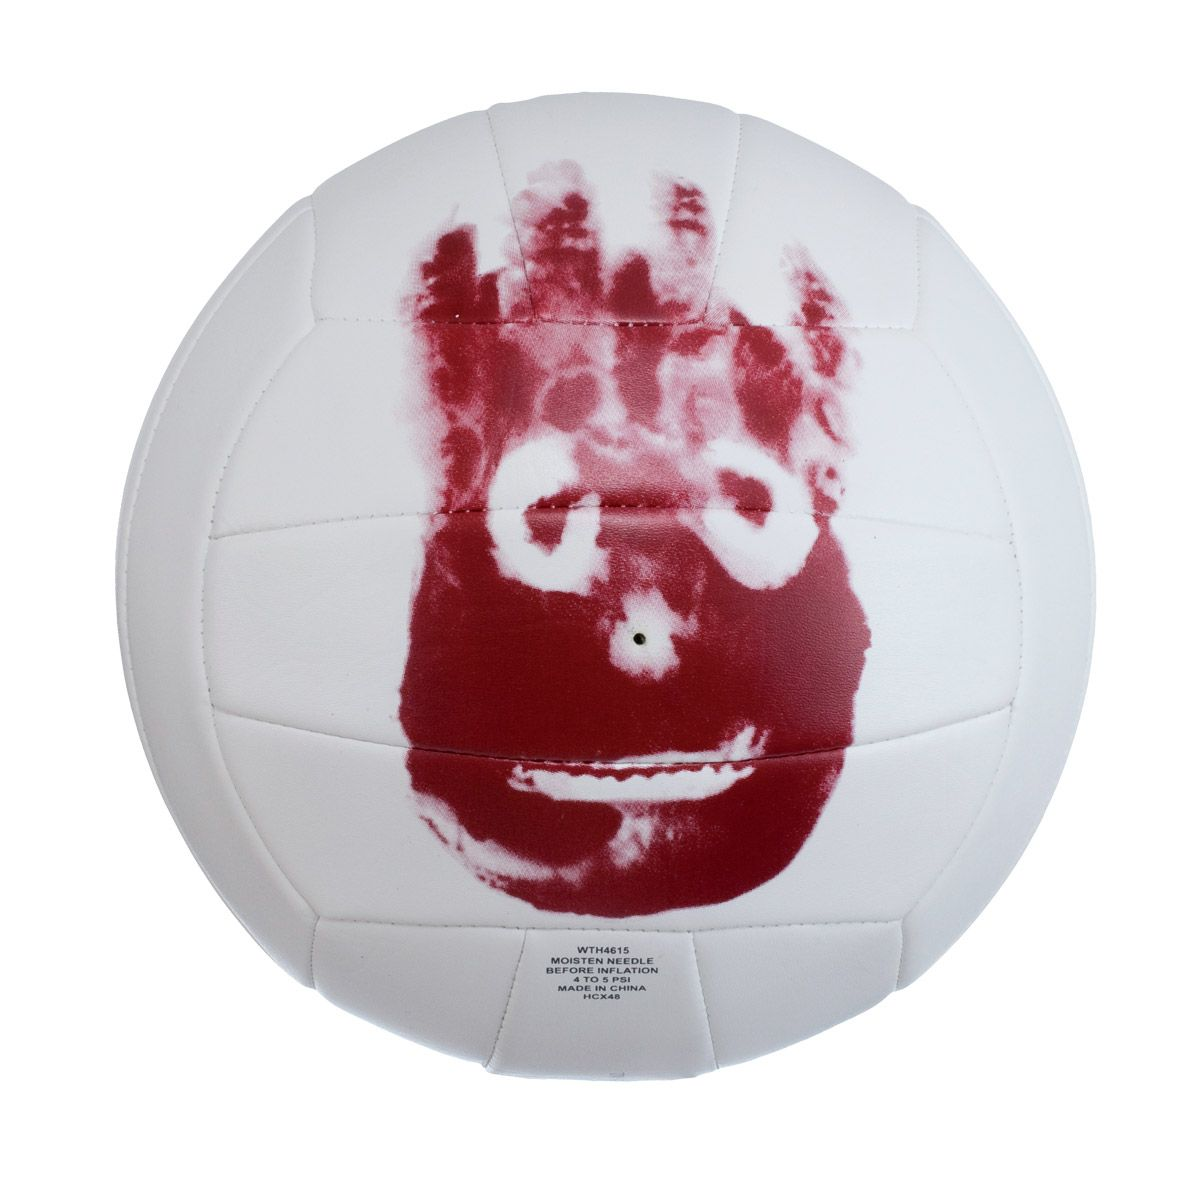 Wilson Cast Away Volleyball Wilson Volleyball Volleyballs Fun Sports